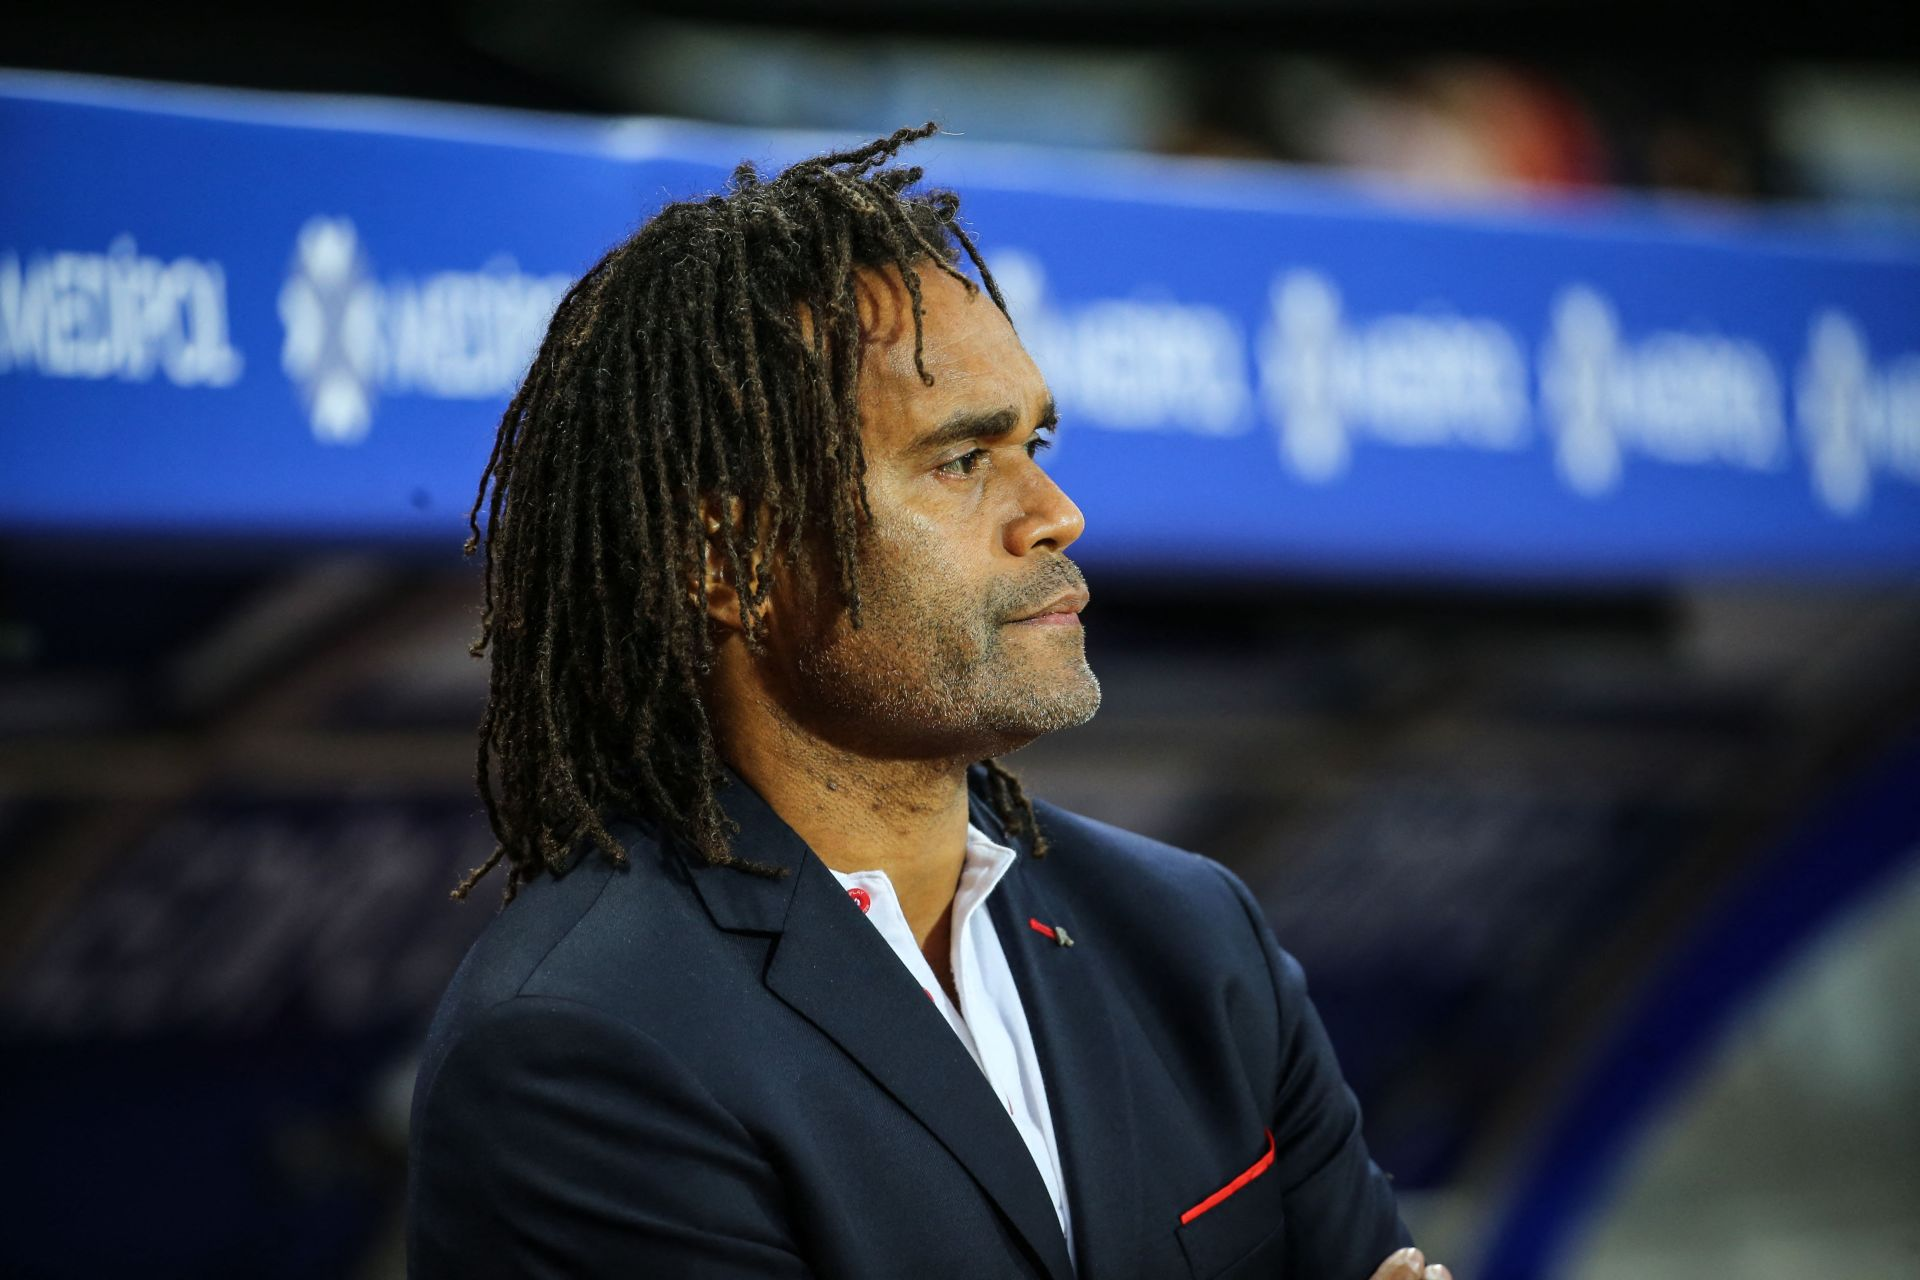 ISTANBUL, TURKEY - AUGUST 7: Strategic Advisor of Olympiacos Christian Karembeu looks on during UEFA Champions League third qualifying round soccer match between Medipol Basaksehir and Olympiacos at the 3rd Istanbul Basaksehir Fatih Terim Stadium in Istanbul, Turkey on August 7, 2019. Sebnem Coskun / Anadolu Agency/ABACAPRESS.COM PILKA NOZNA SEZON 2019/2020 LIGA MISTRZOW ELIMINACJE FOT. ABACA/NEWSPIX.PL POLAND ONLY! --- Newspix.pl *** Local Caption *** www.newspix.pl mail us: info@newspix.pl call us: 0048 022 23 22 222 --- Polish Picture Agency by Ringier Axel Springer Poland